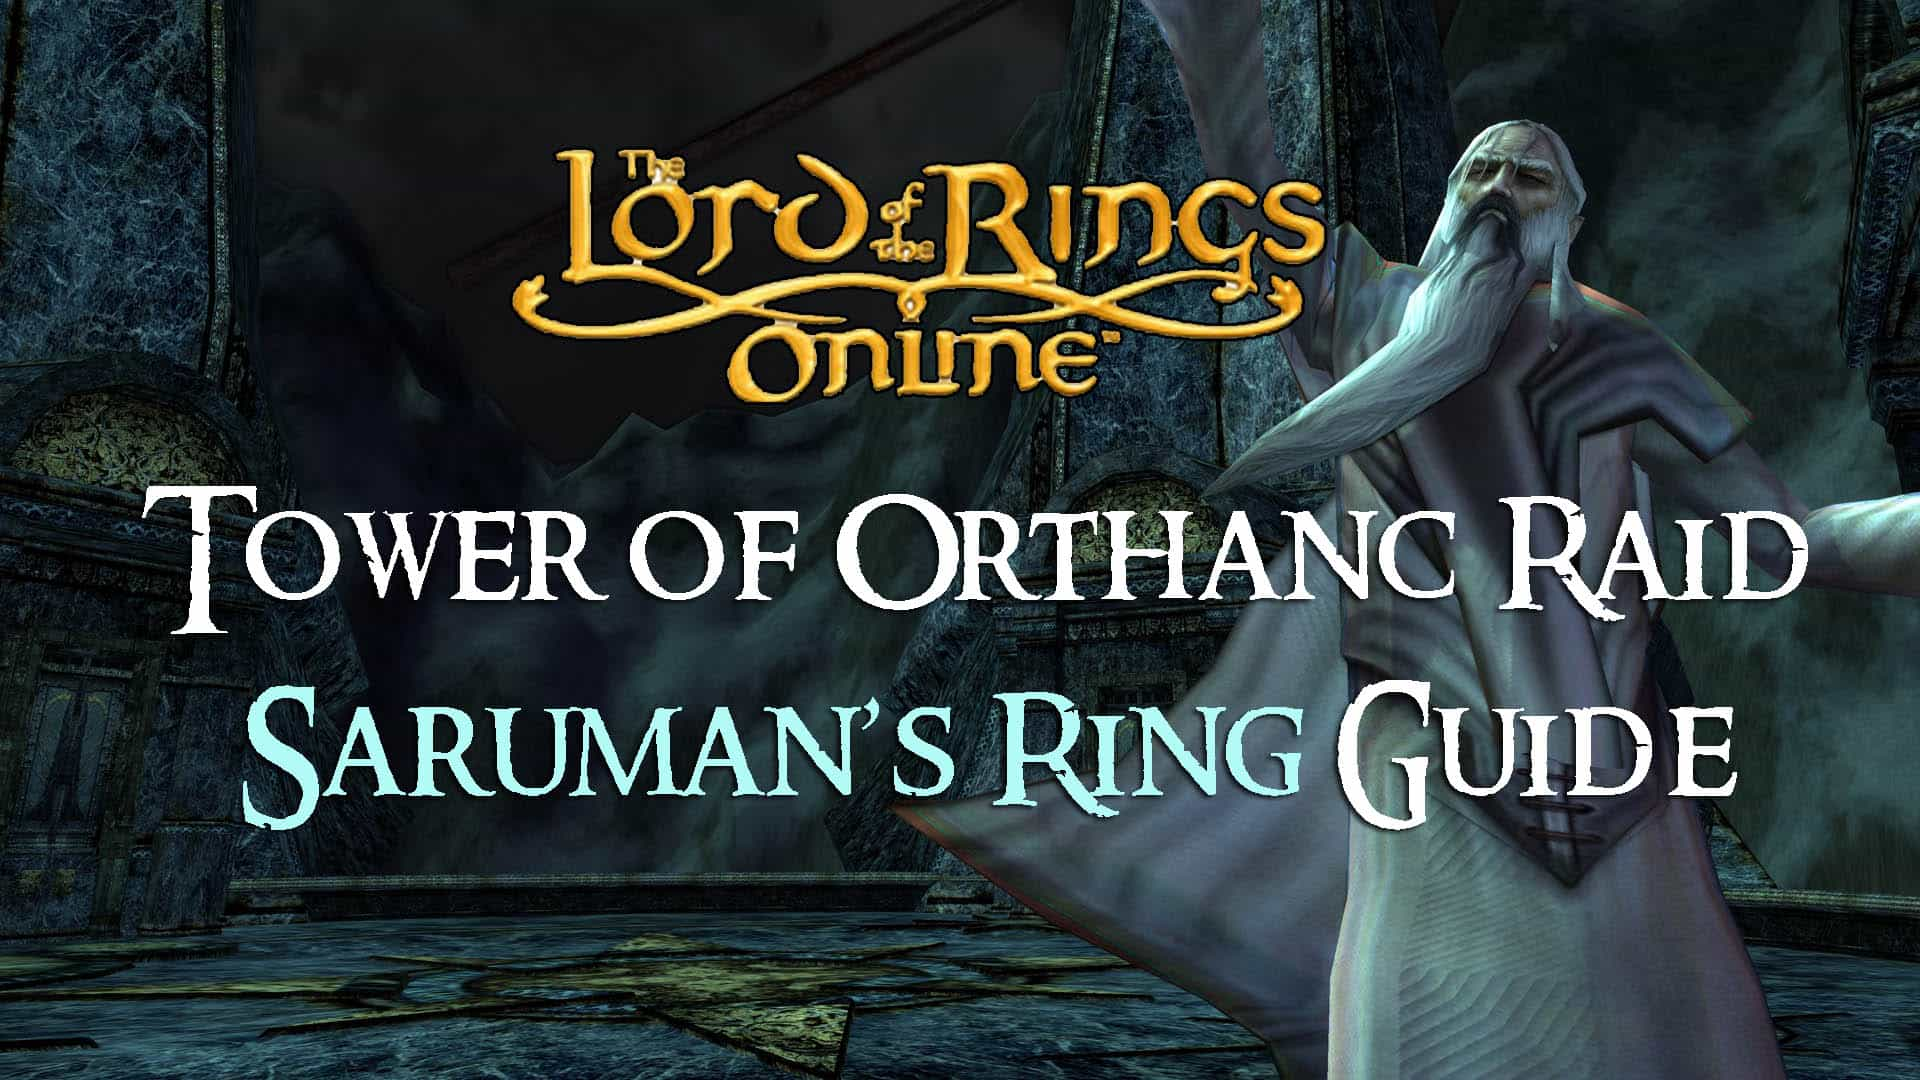 Monster Hunter World Beta Times >> Saruman's Ring Guide: The Tower of Orthanc Raid | Fextralife